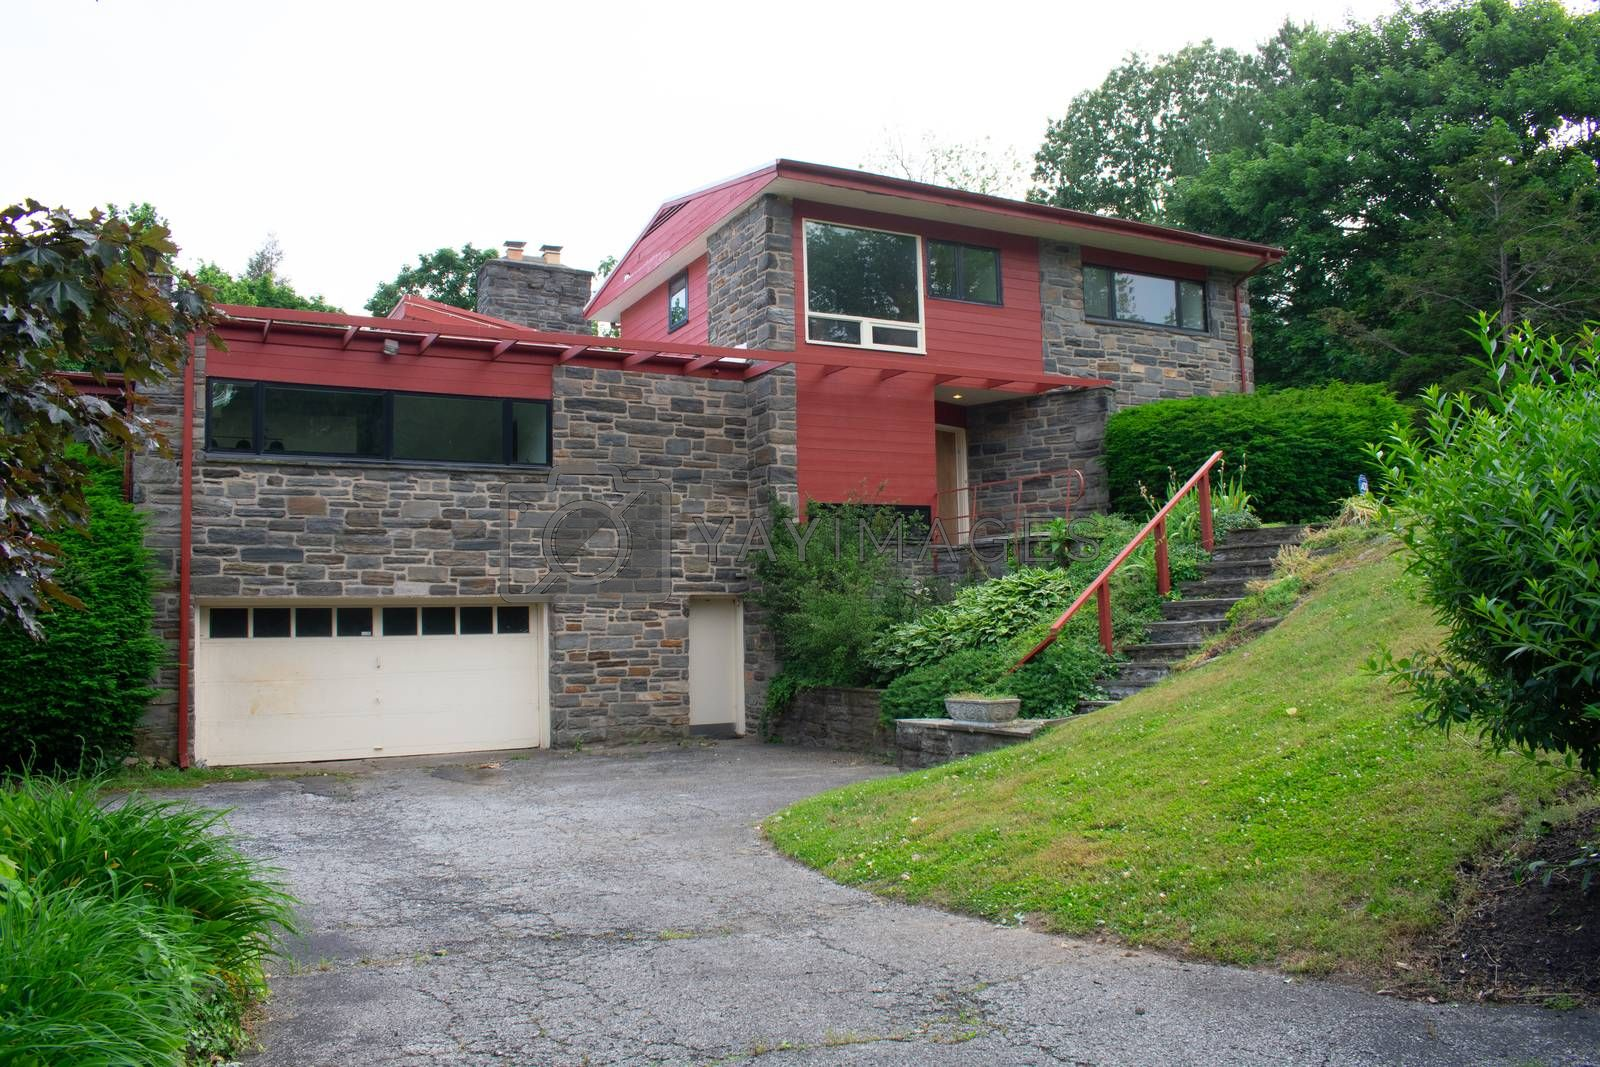 A Modern Cobblestone House With a Red Trim and a Red Roof and Driveway